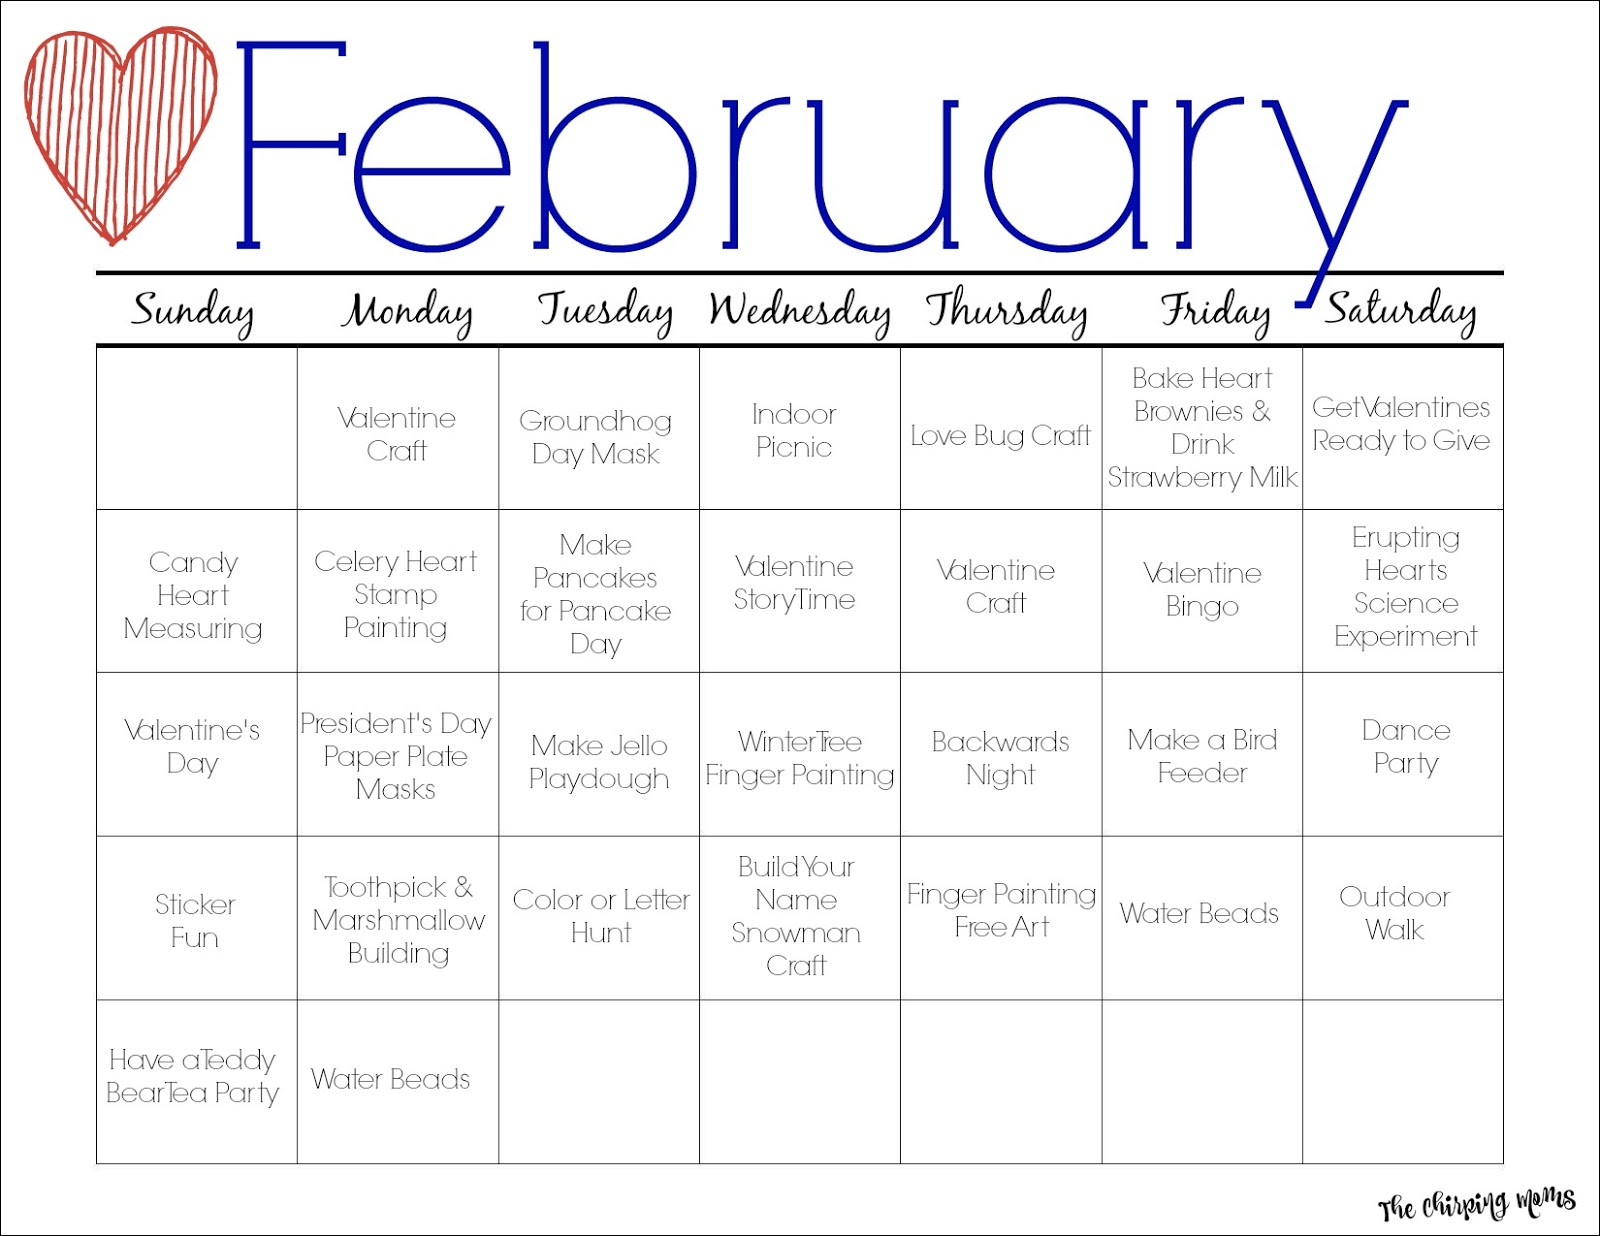 february printable activity calendar for kids the chirping moms - Printable Activity